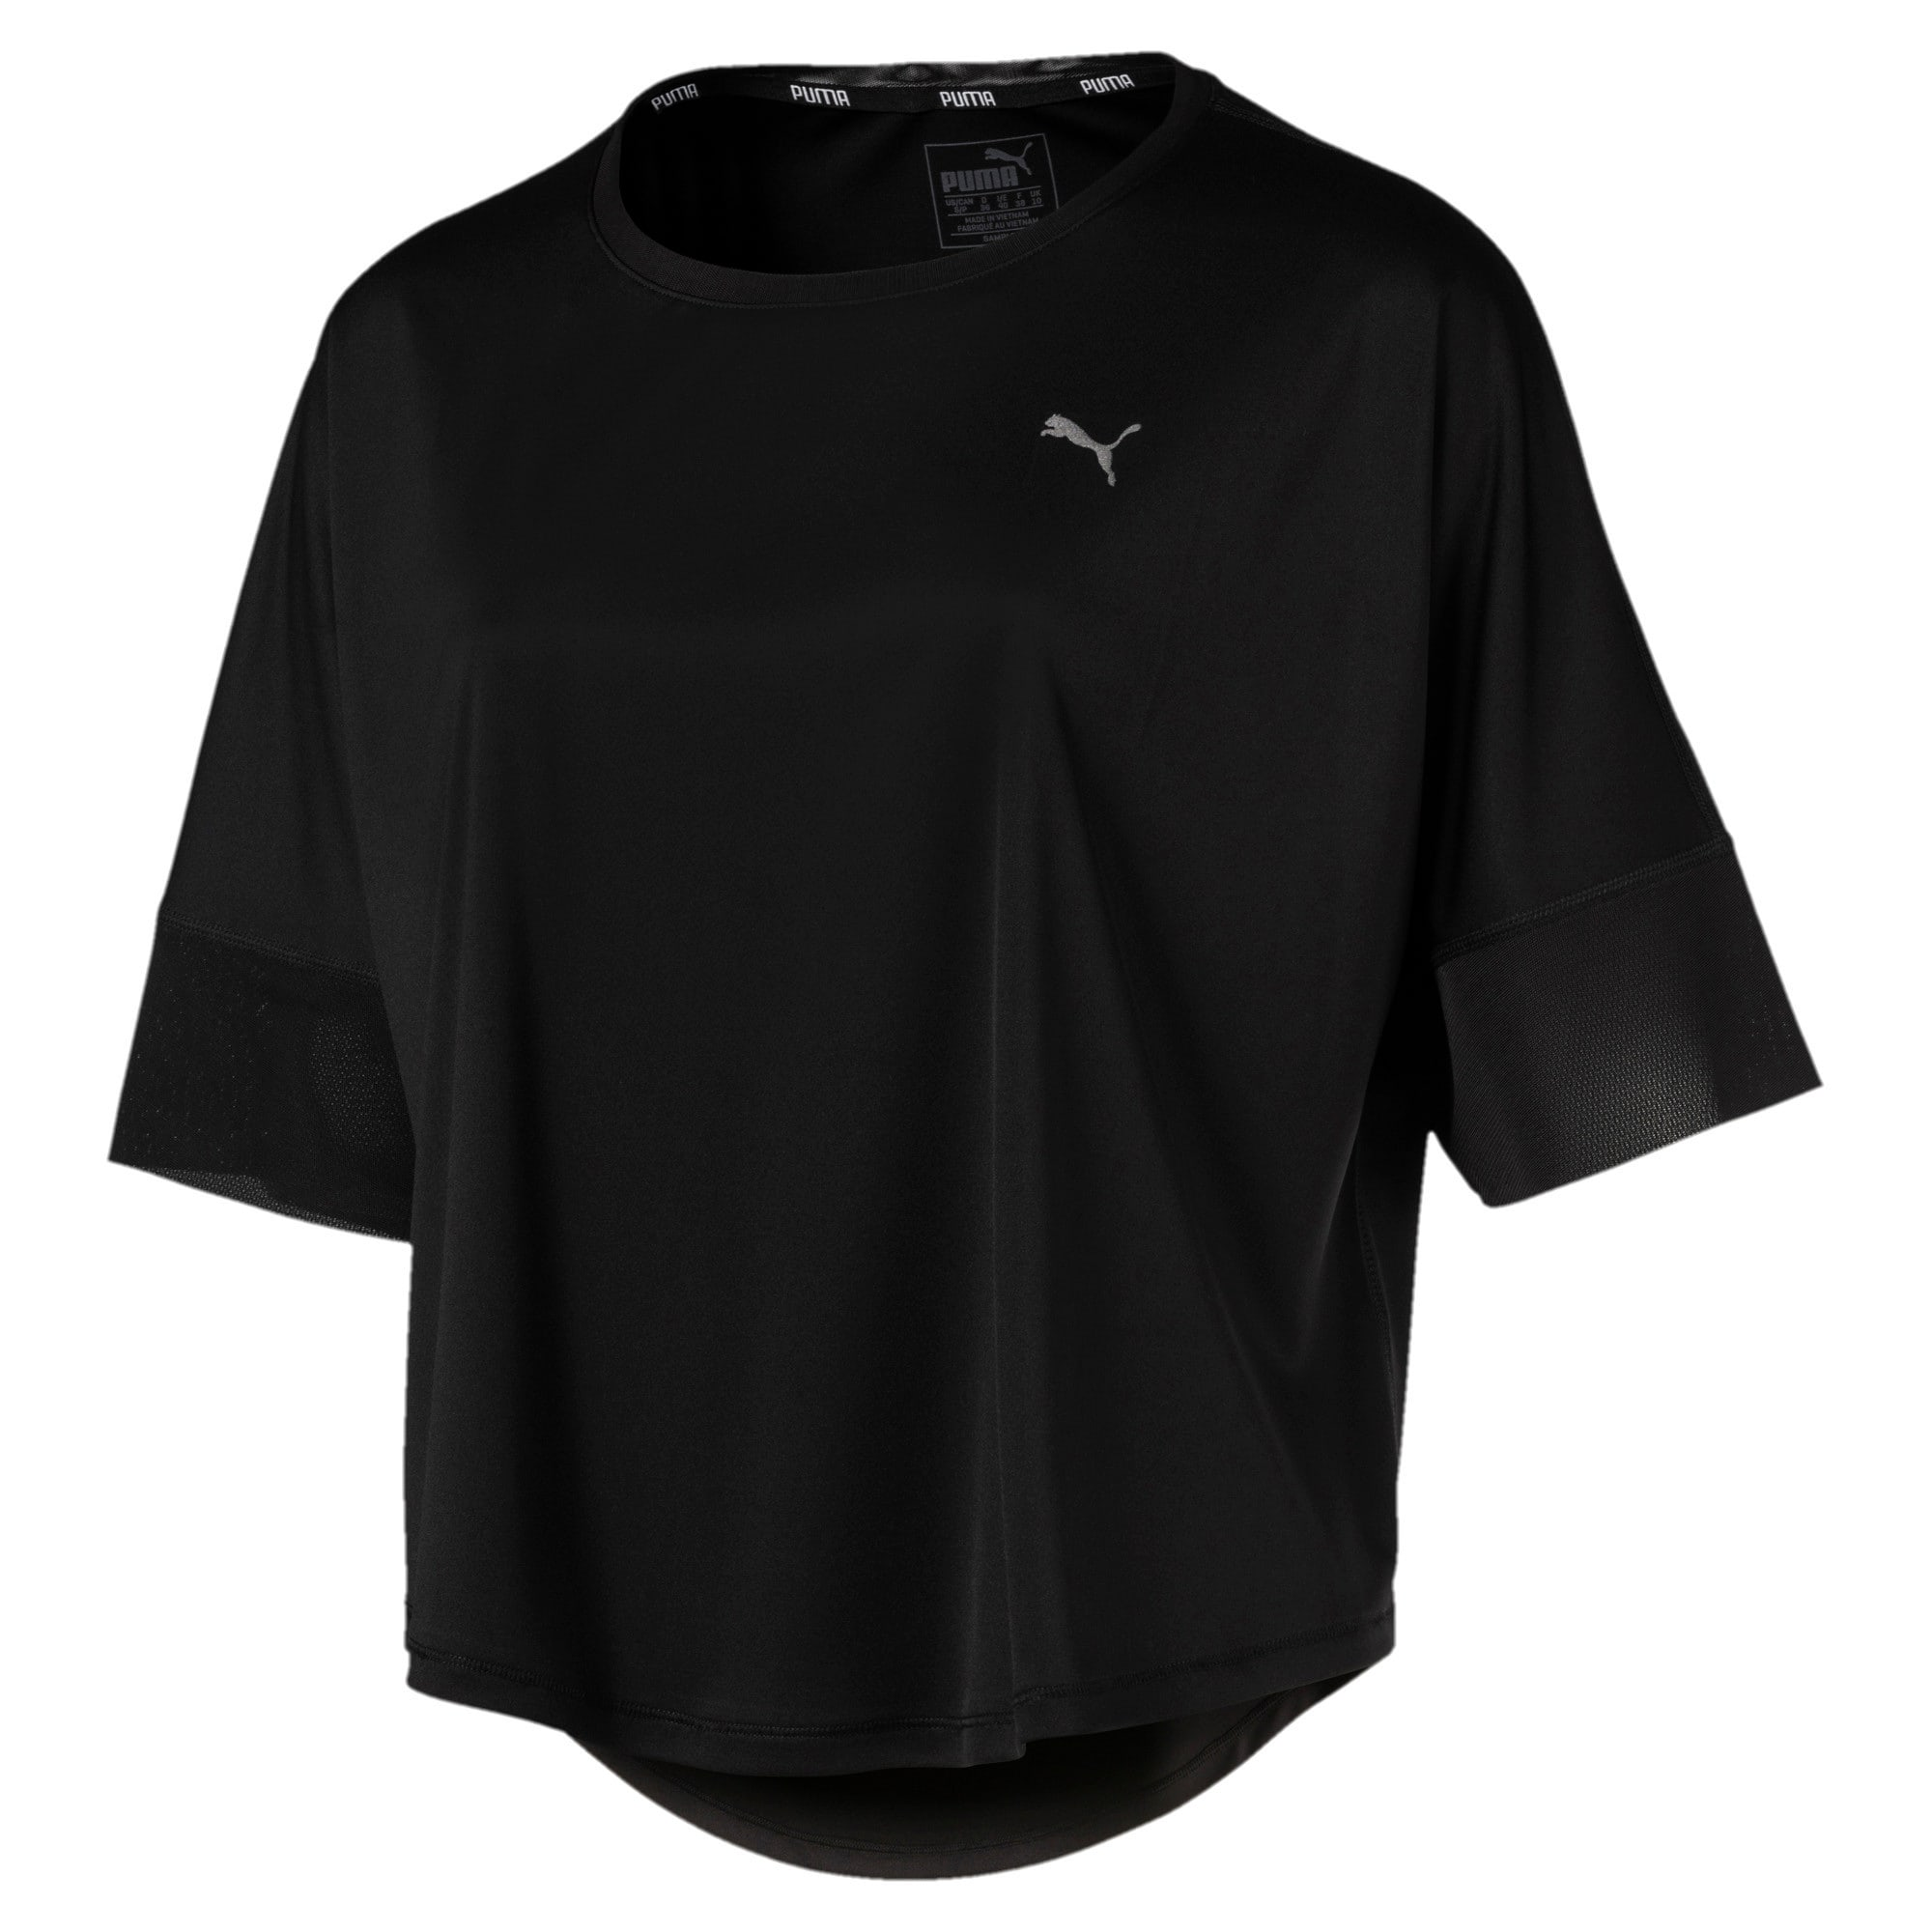 Thumbnail 4 of Explosive Women's Training Top, Puma Black, medium-IND